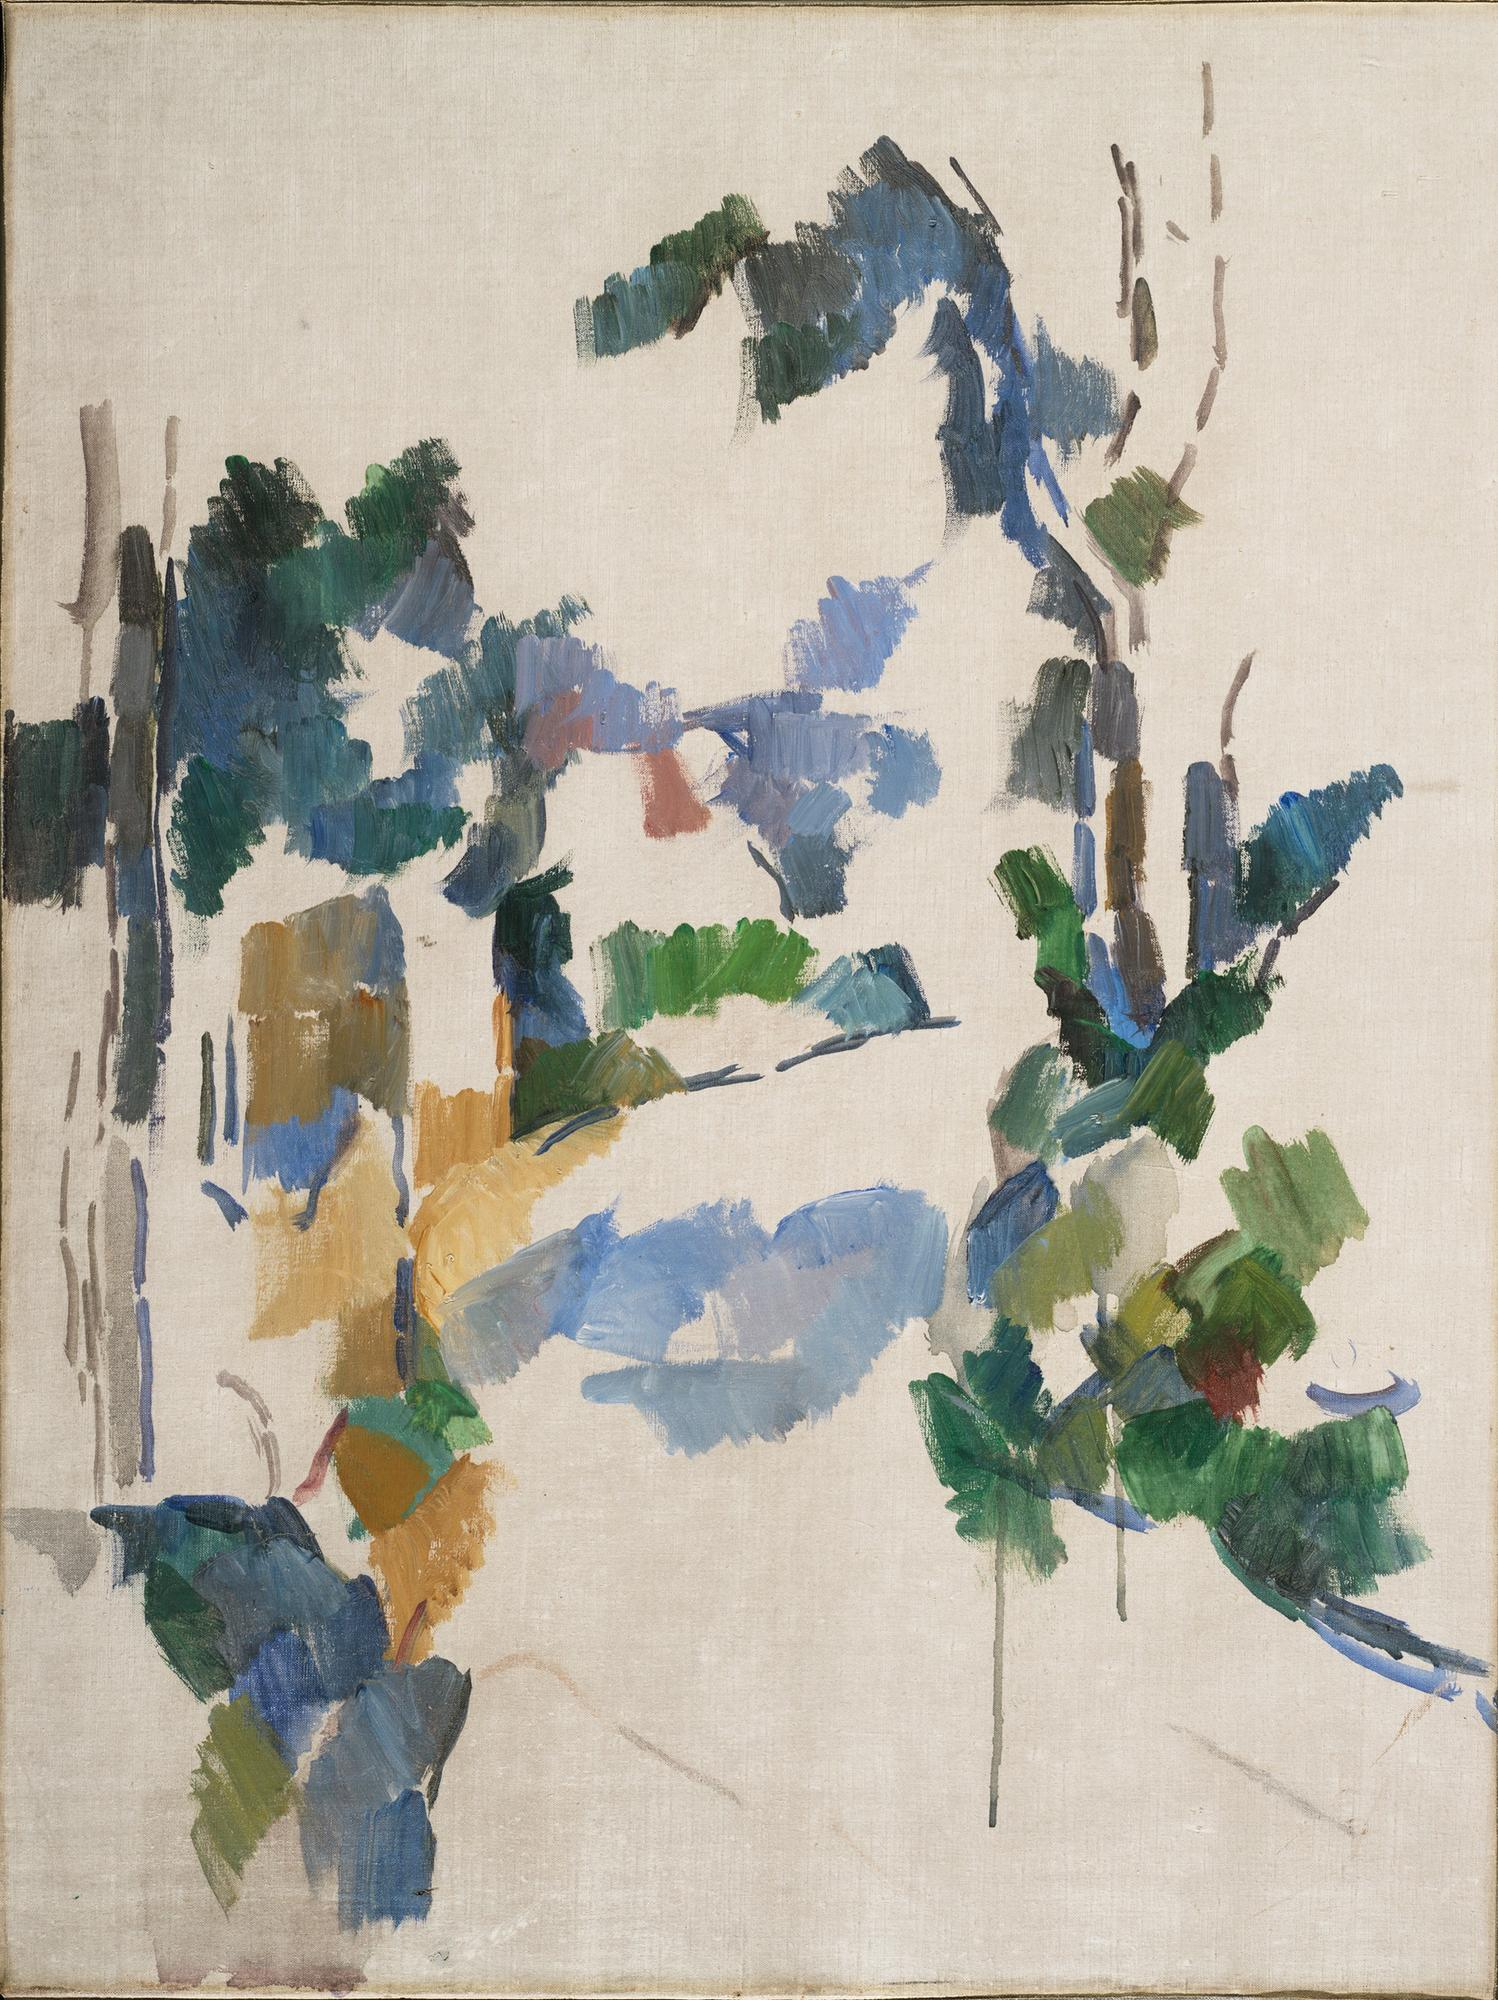 Paul Cezanne, unfinished painting of trees